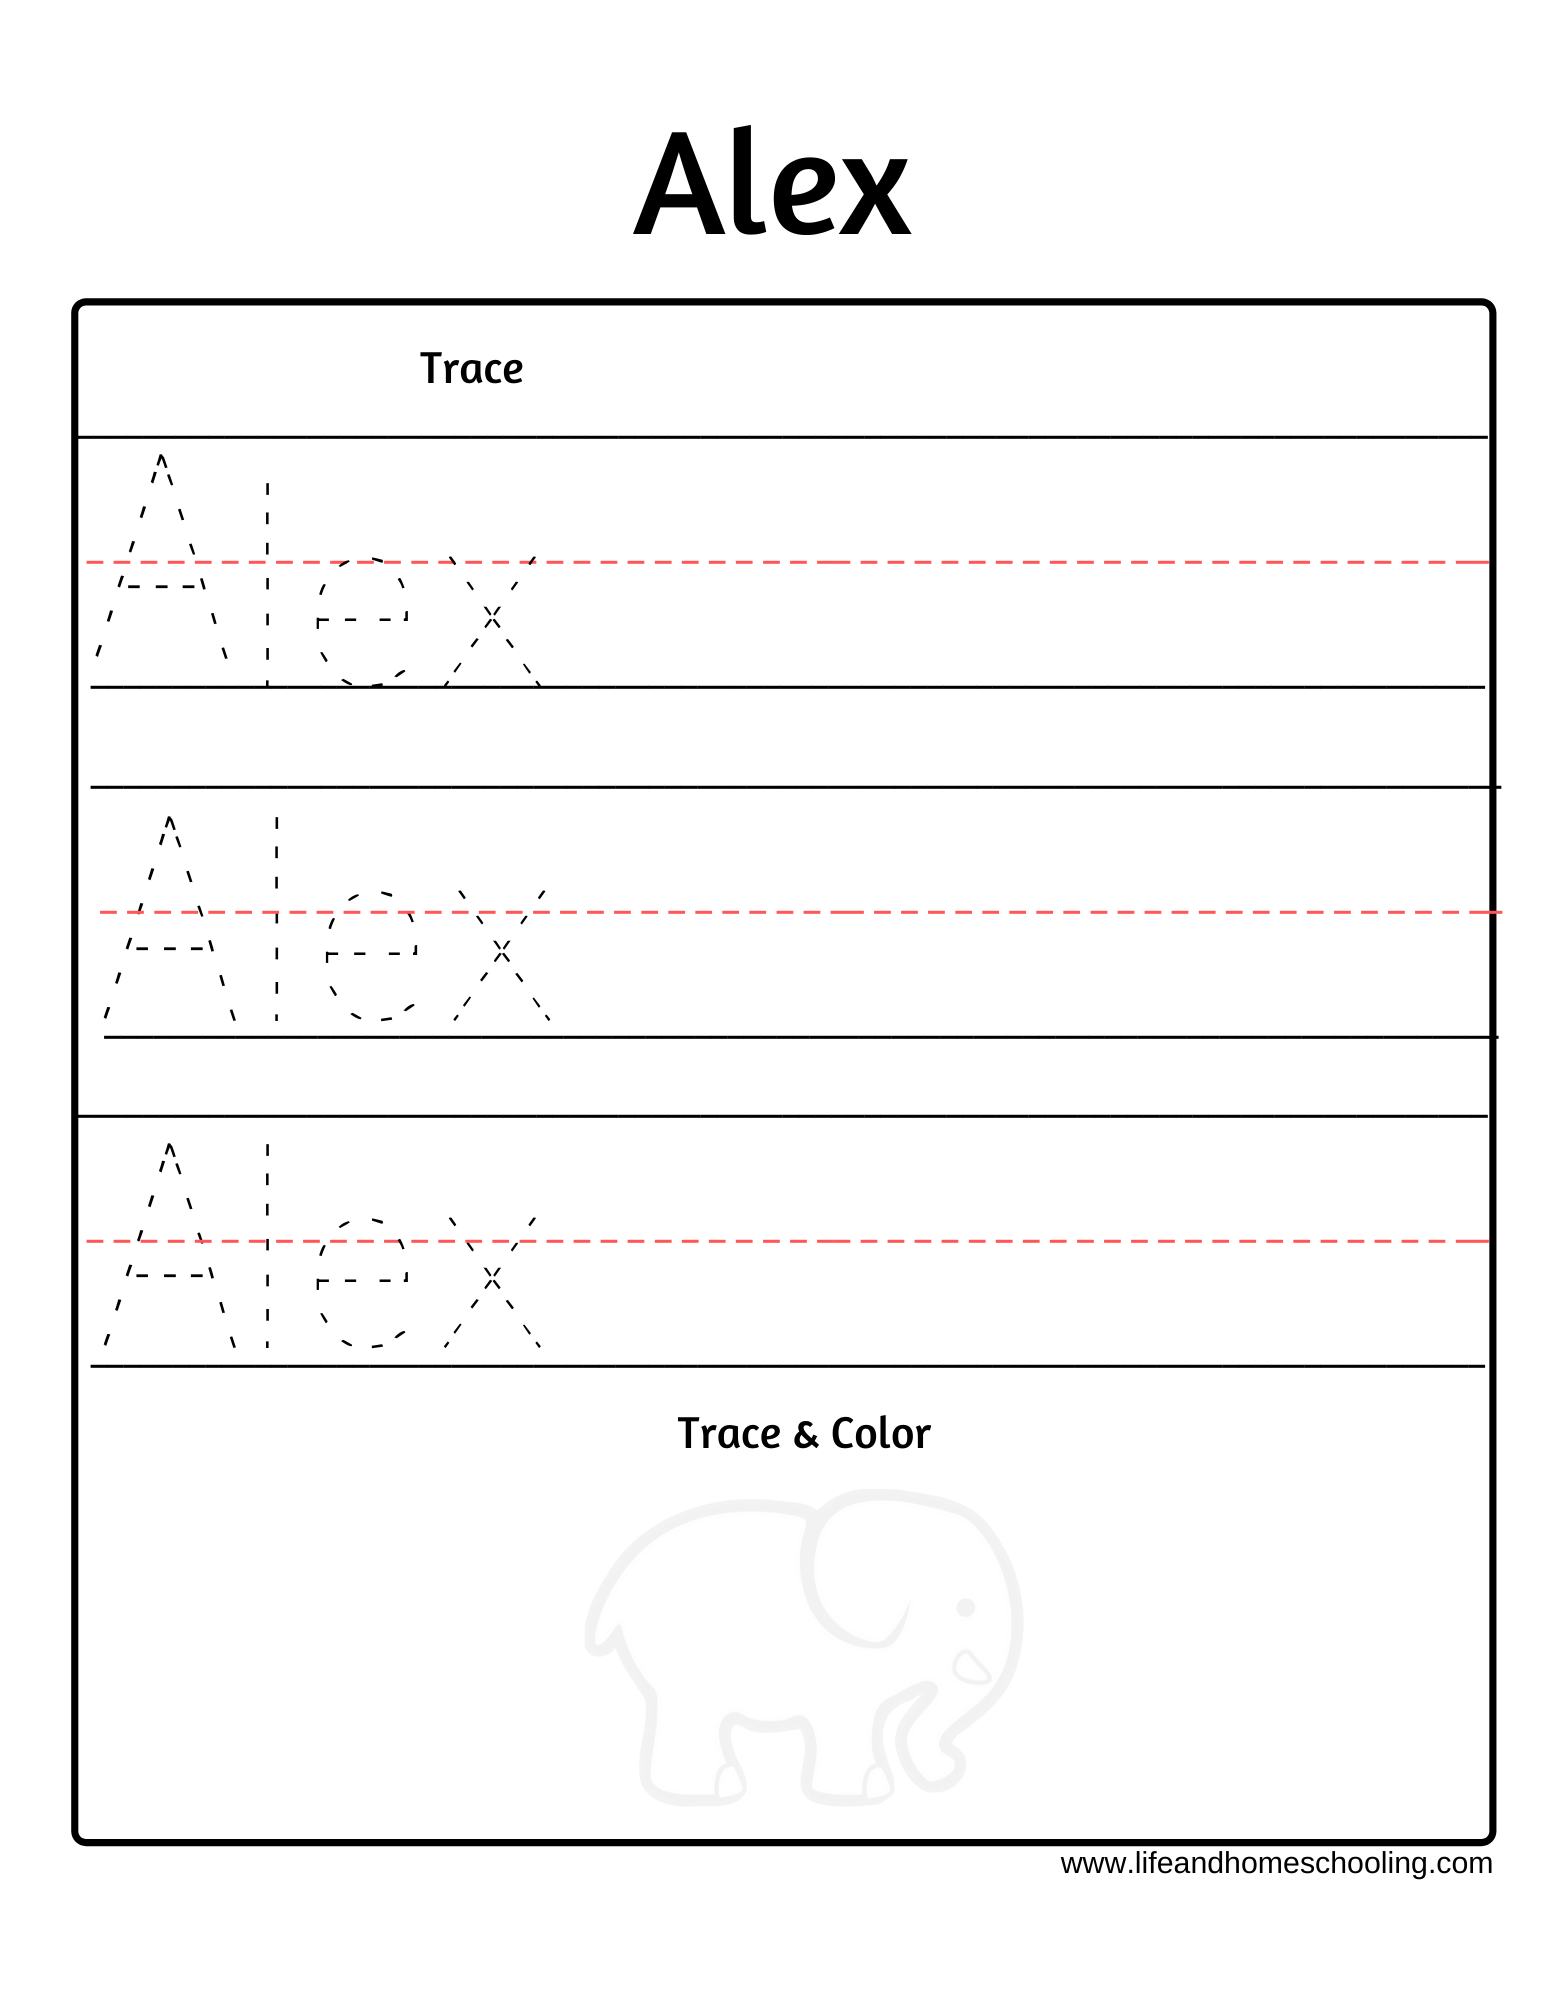 Trace My Name Worksheet In 2020 | Name Tracing Worksheets